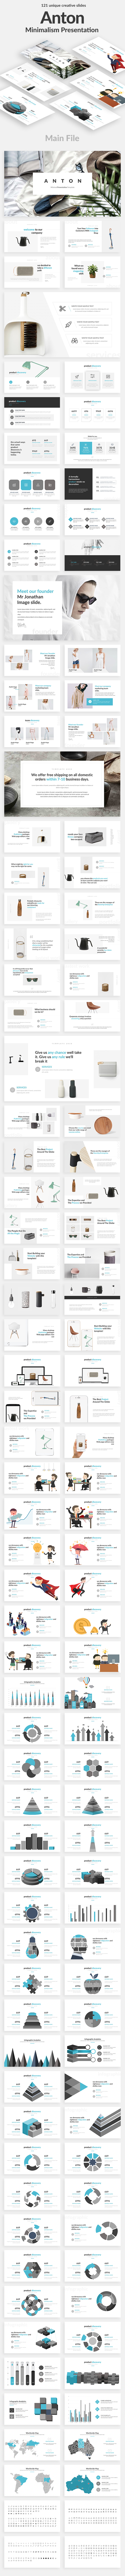 Anton Minimalism Google Slide Template - Google Slides Presentation Templates